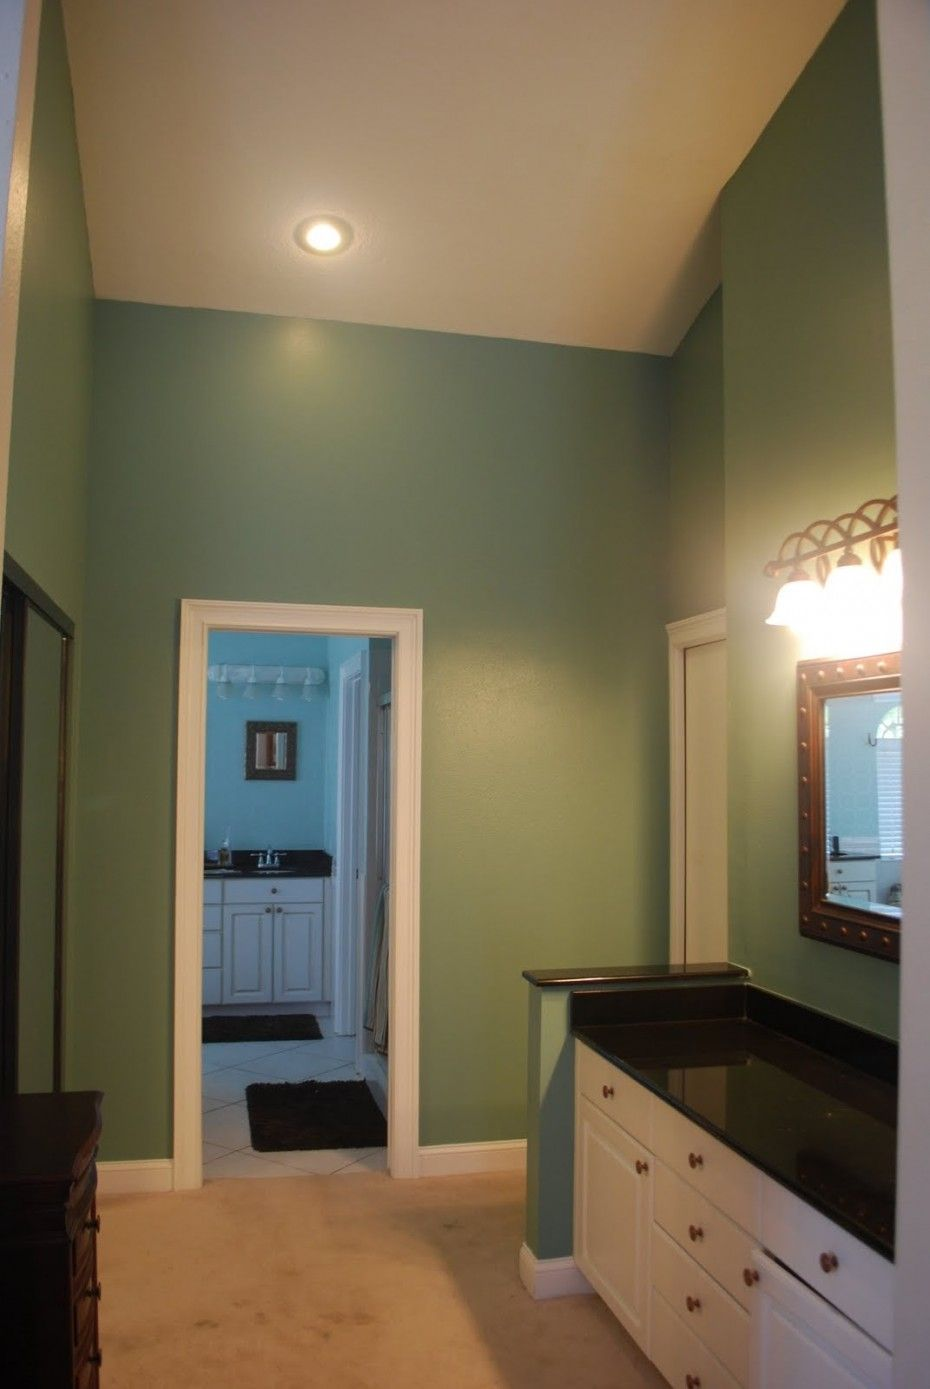 Bathroom paint colors ideas warm green bathroom painting for Green bathroom paint colors